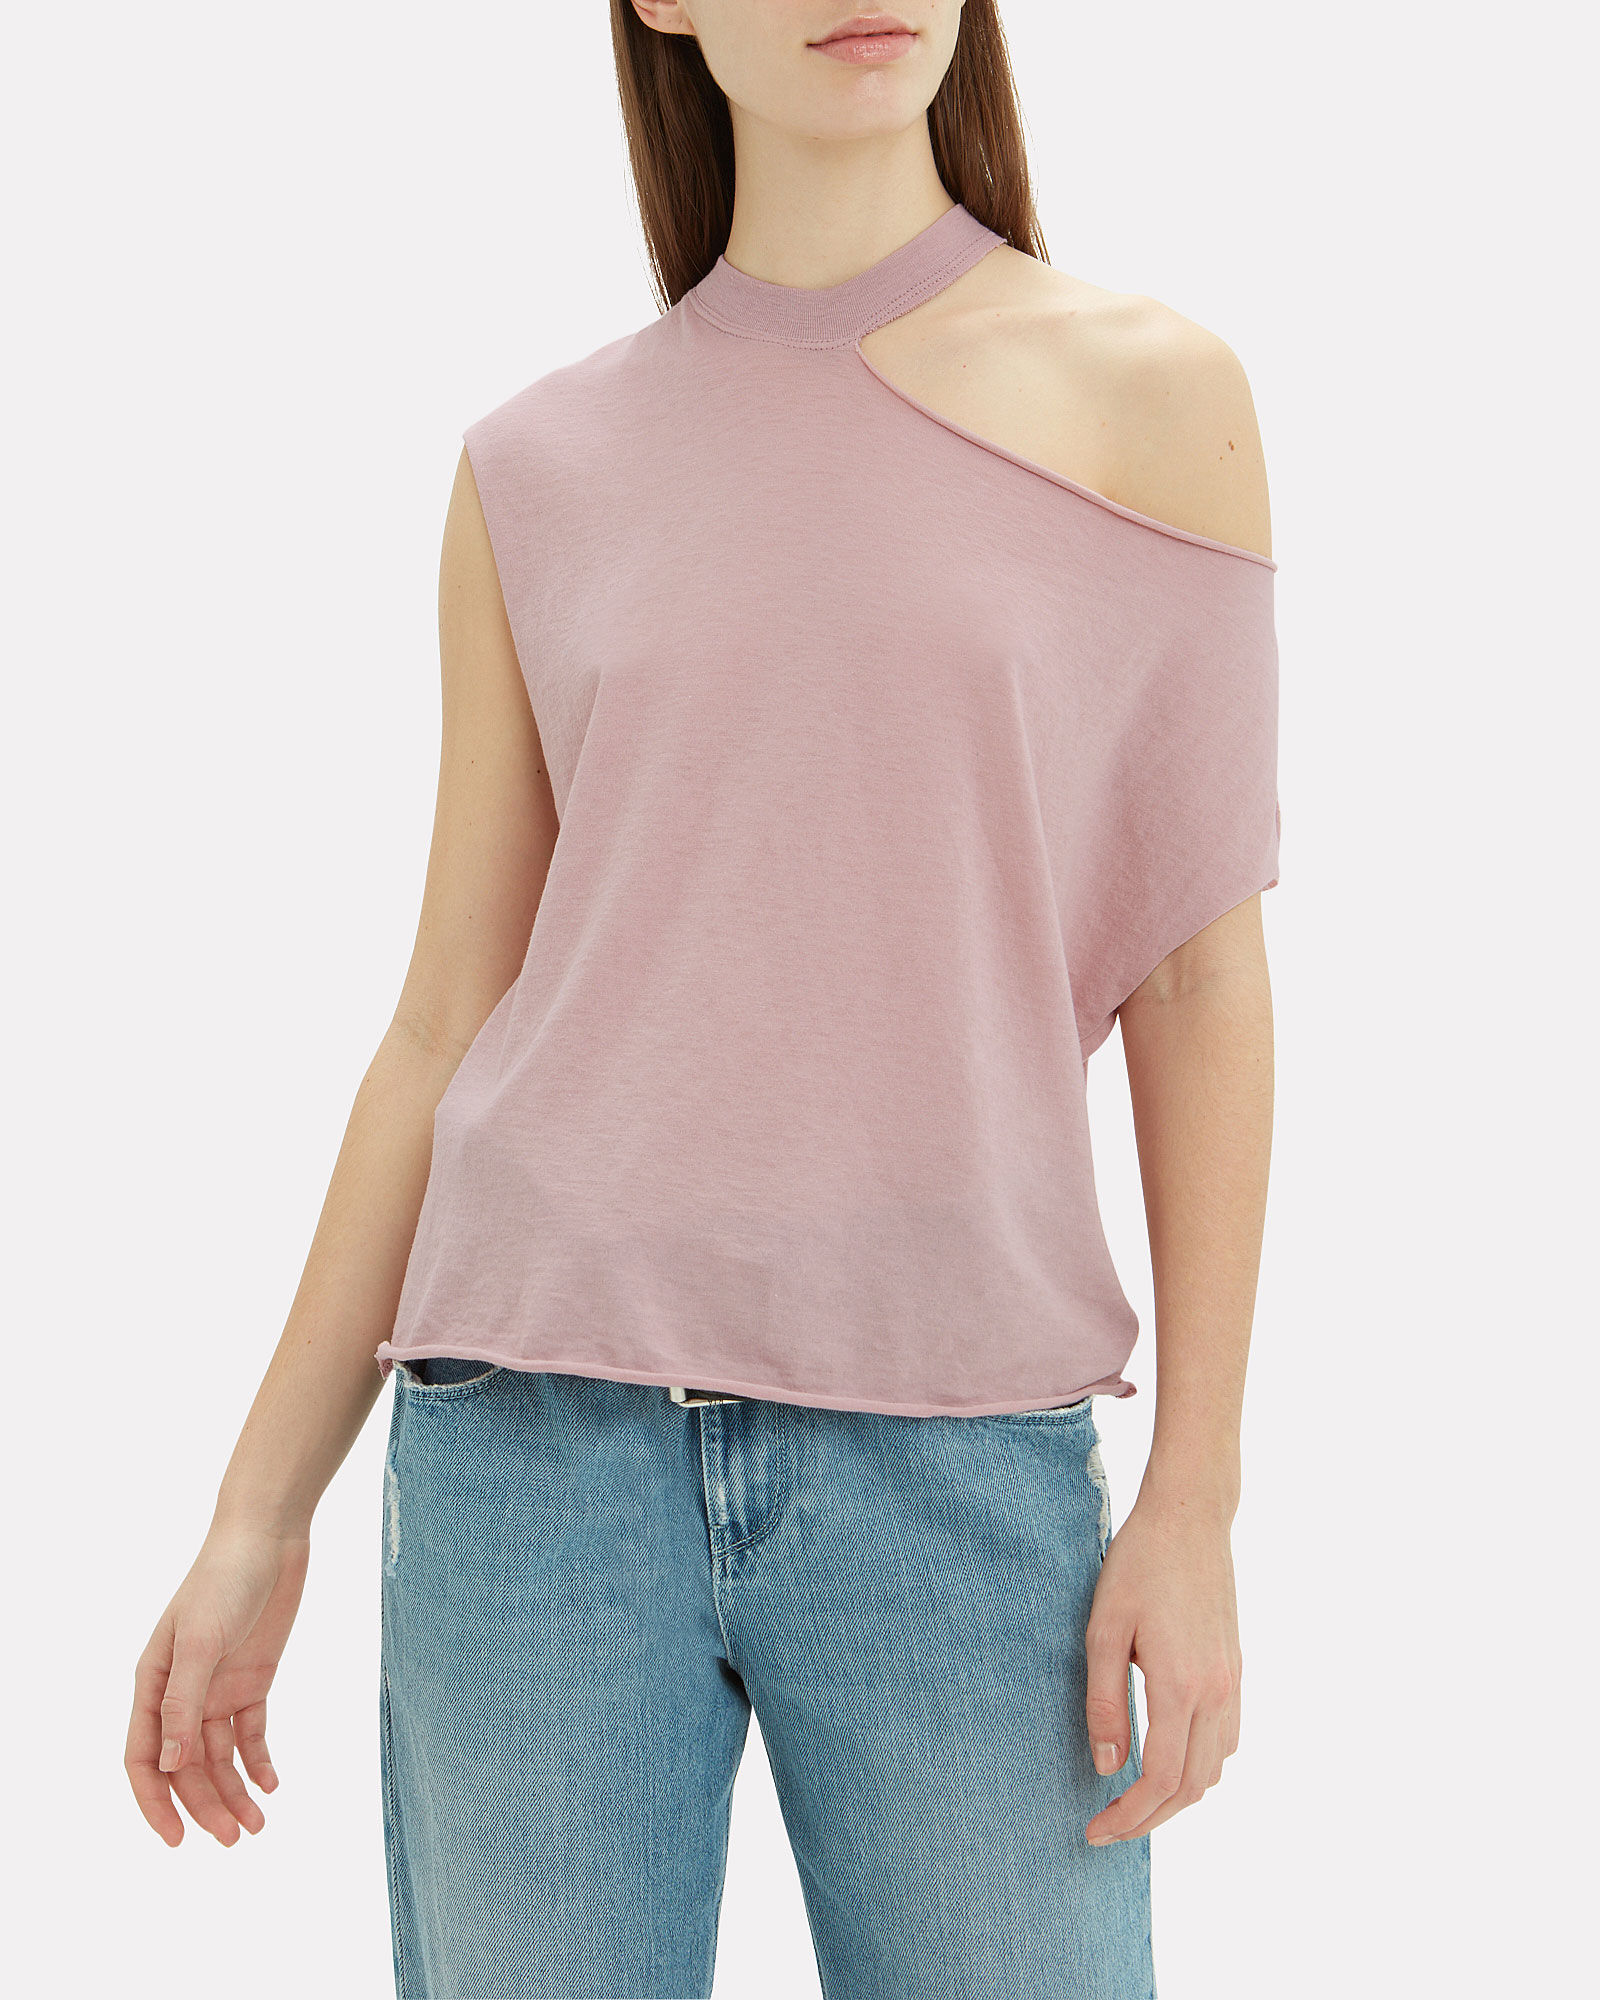 Axel Cutout T-Shirt, BLUSH, hi-res